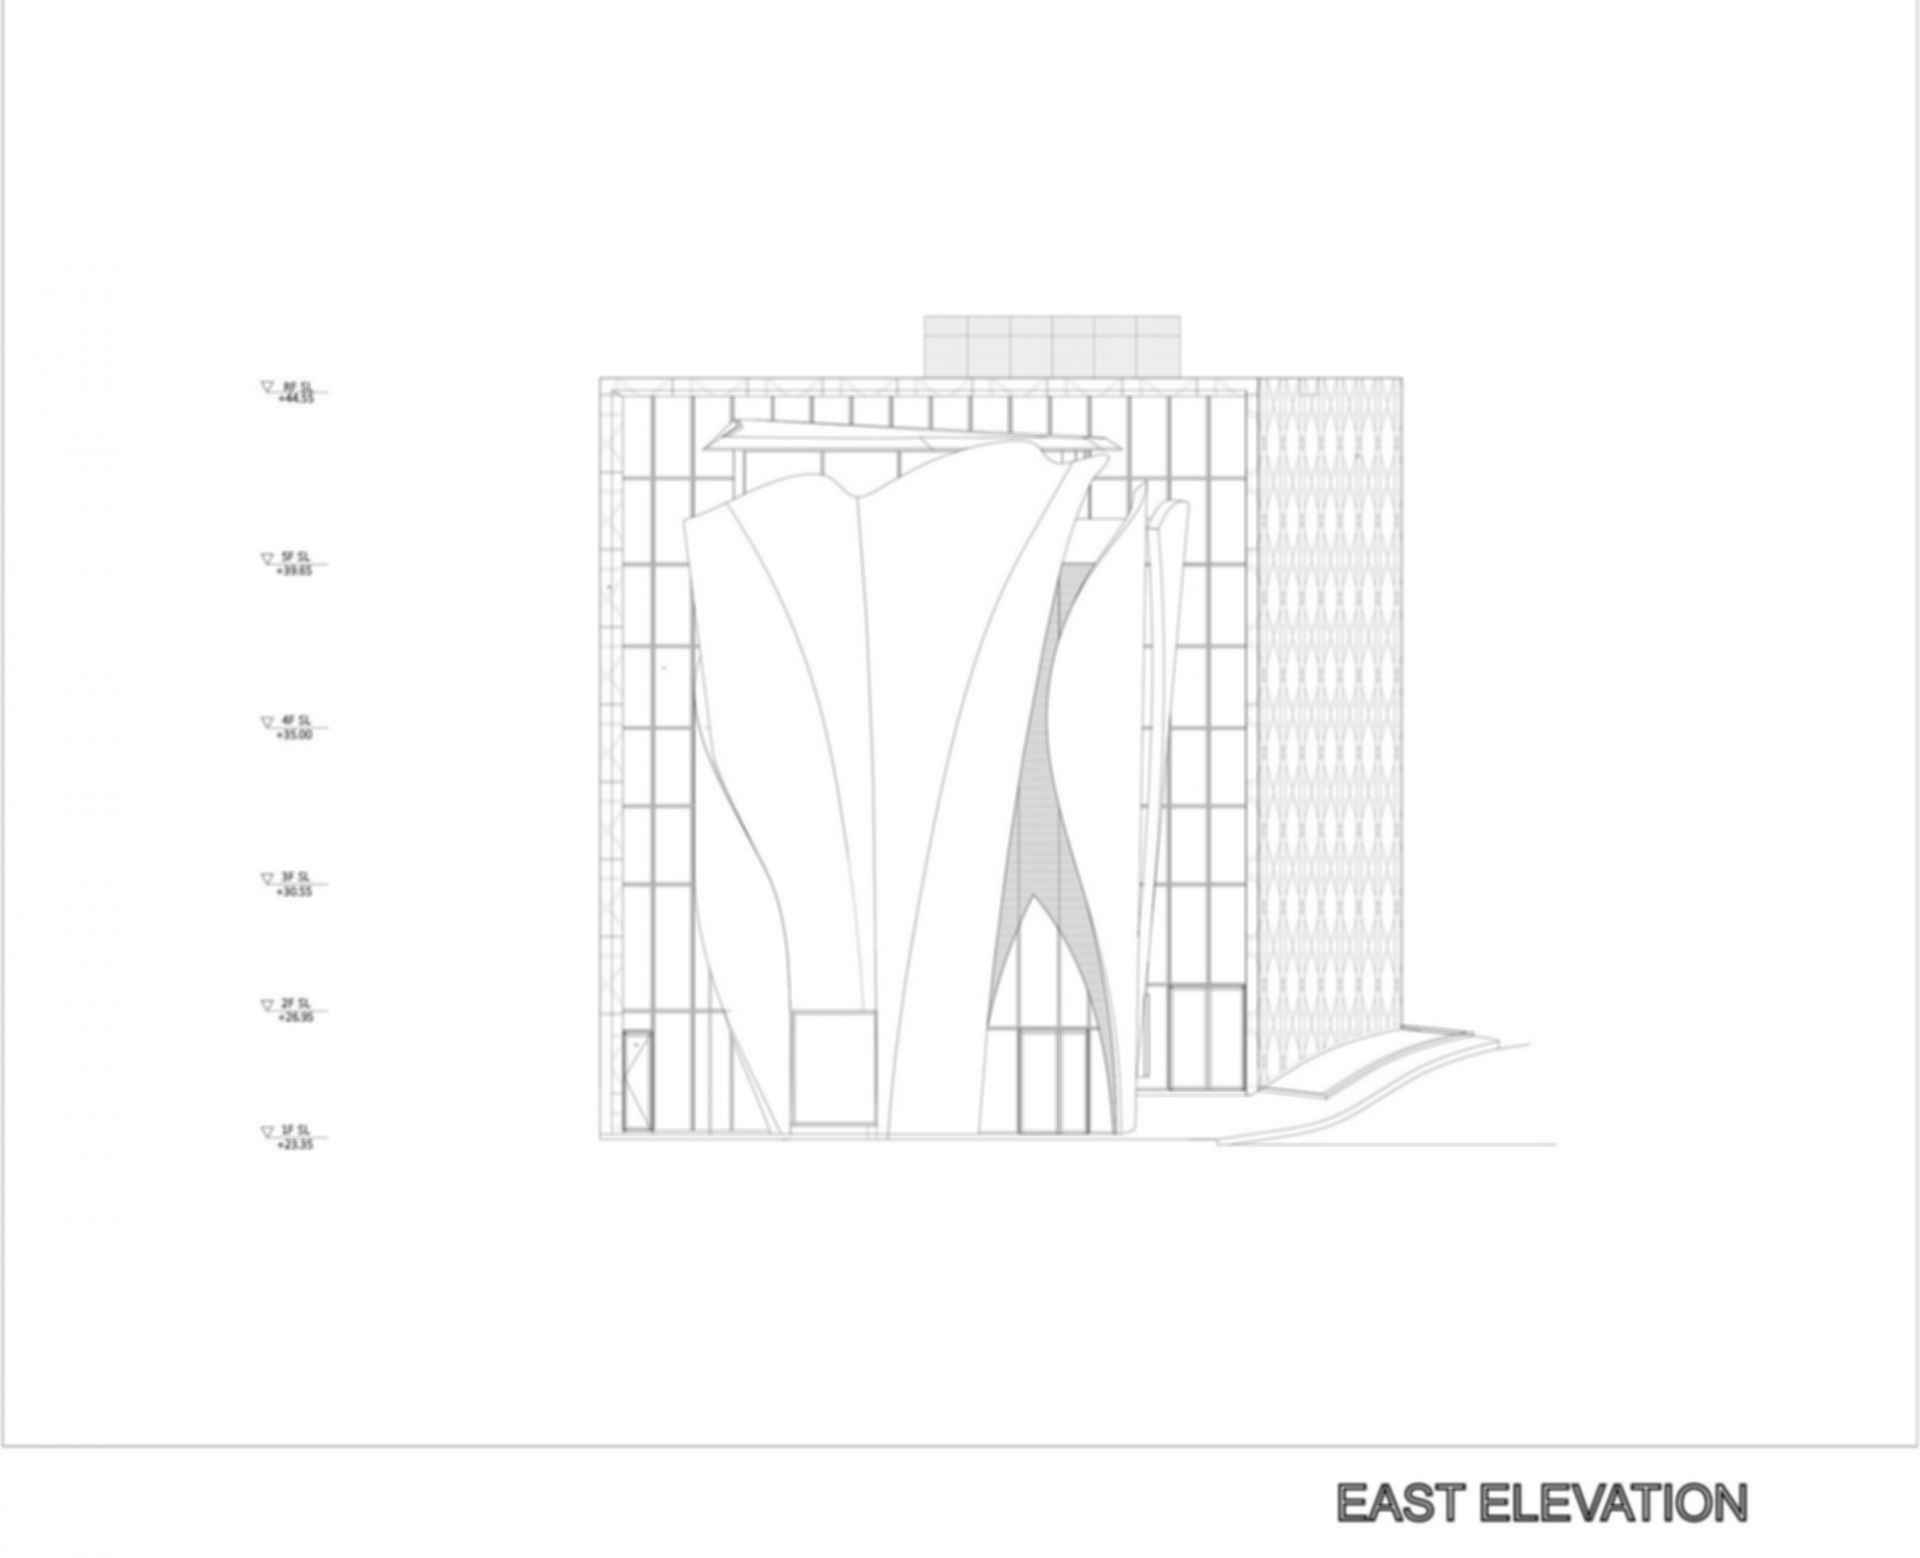 House of Dior - East Elevation